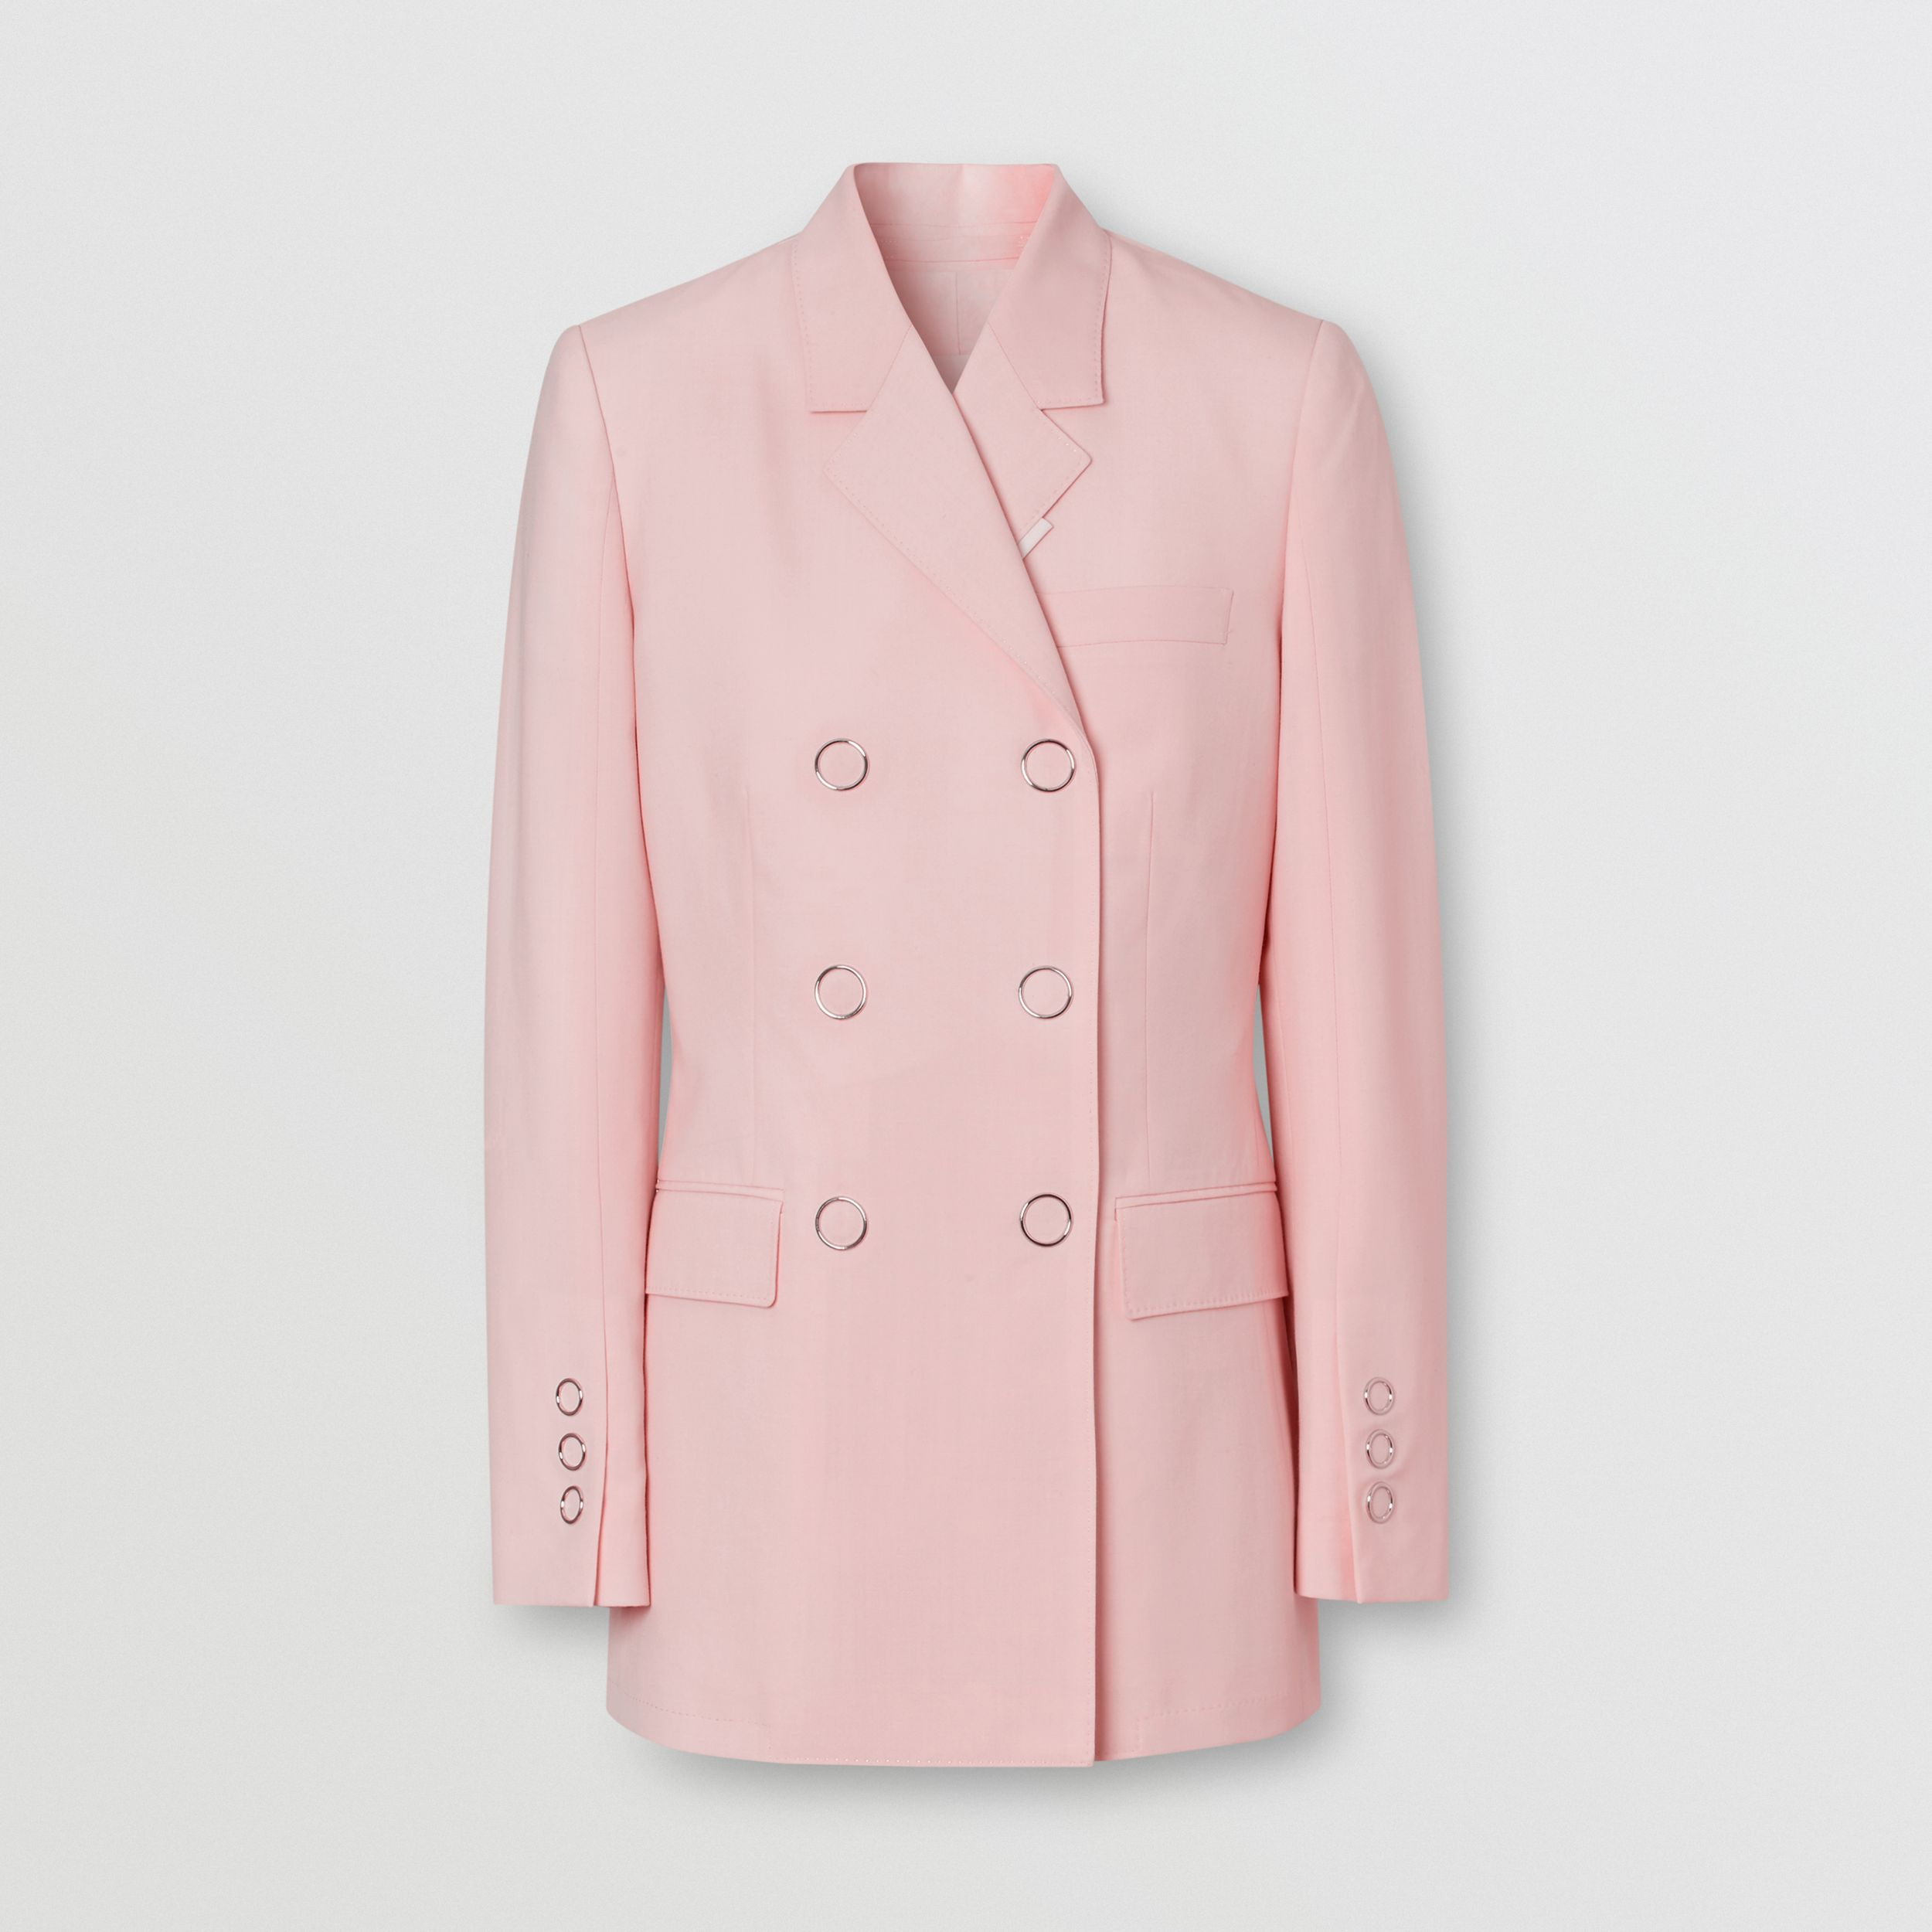 Tumbled Wool Double-breasted Blazer in Soft Pink - Women | Burberry Canada - 4